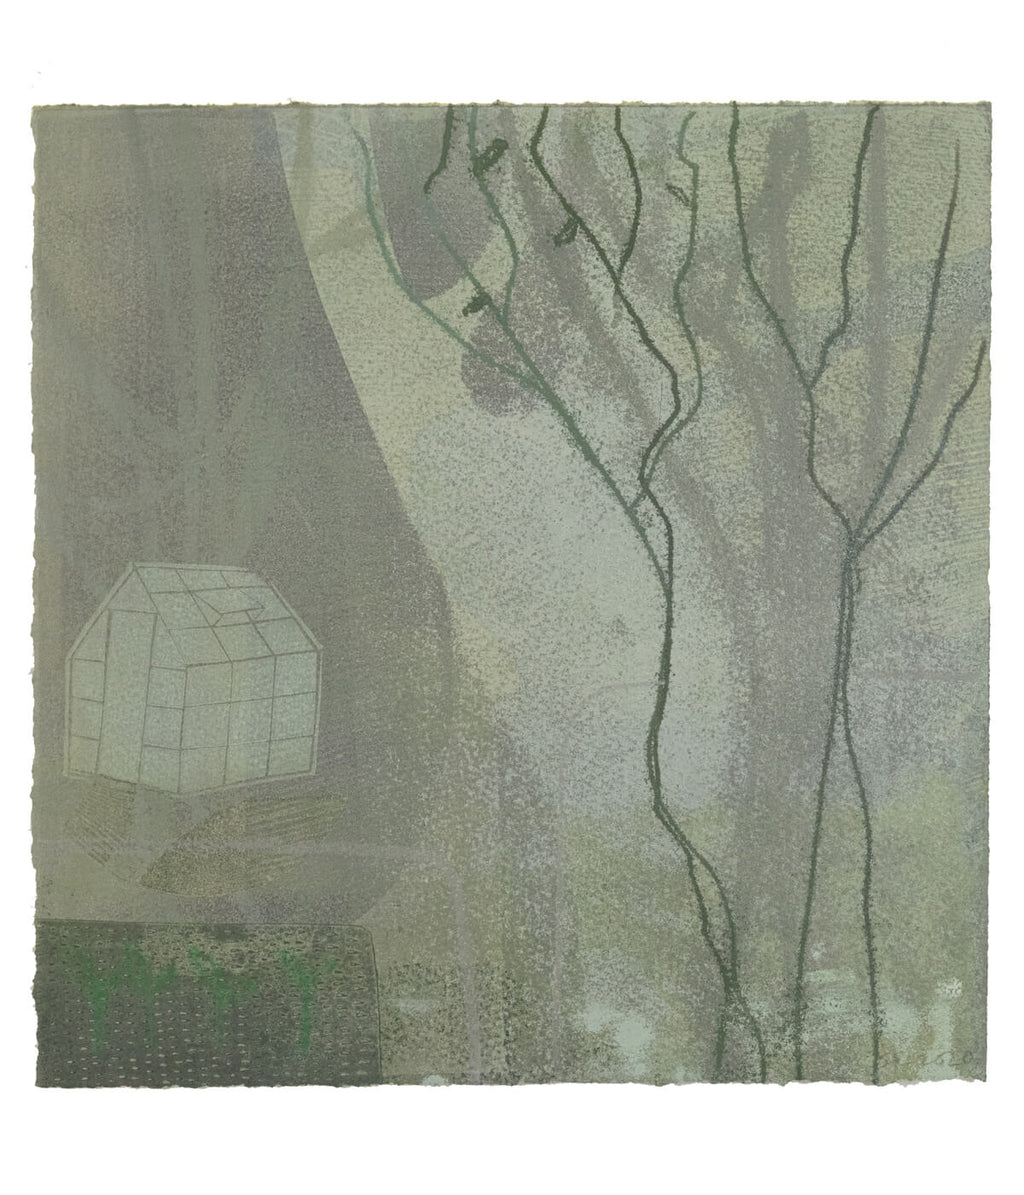 Glasshouse, monotype print by Sarah Kirby